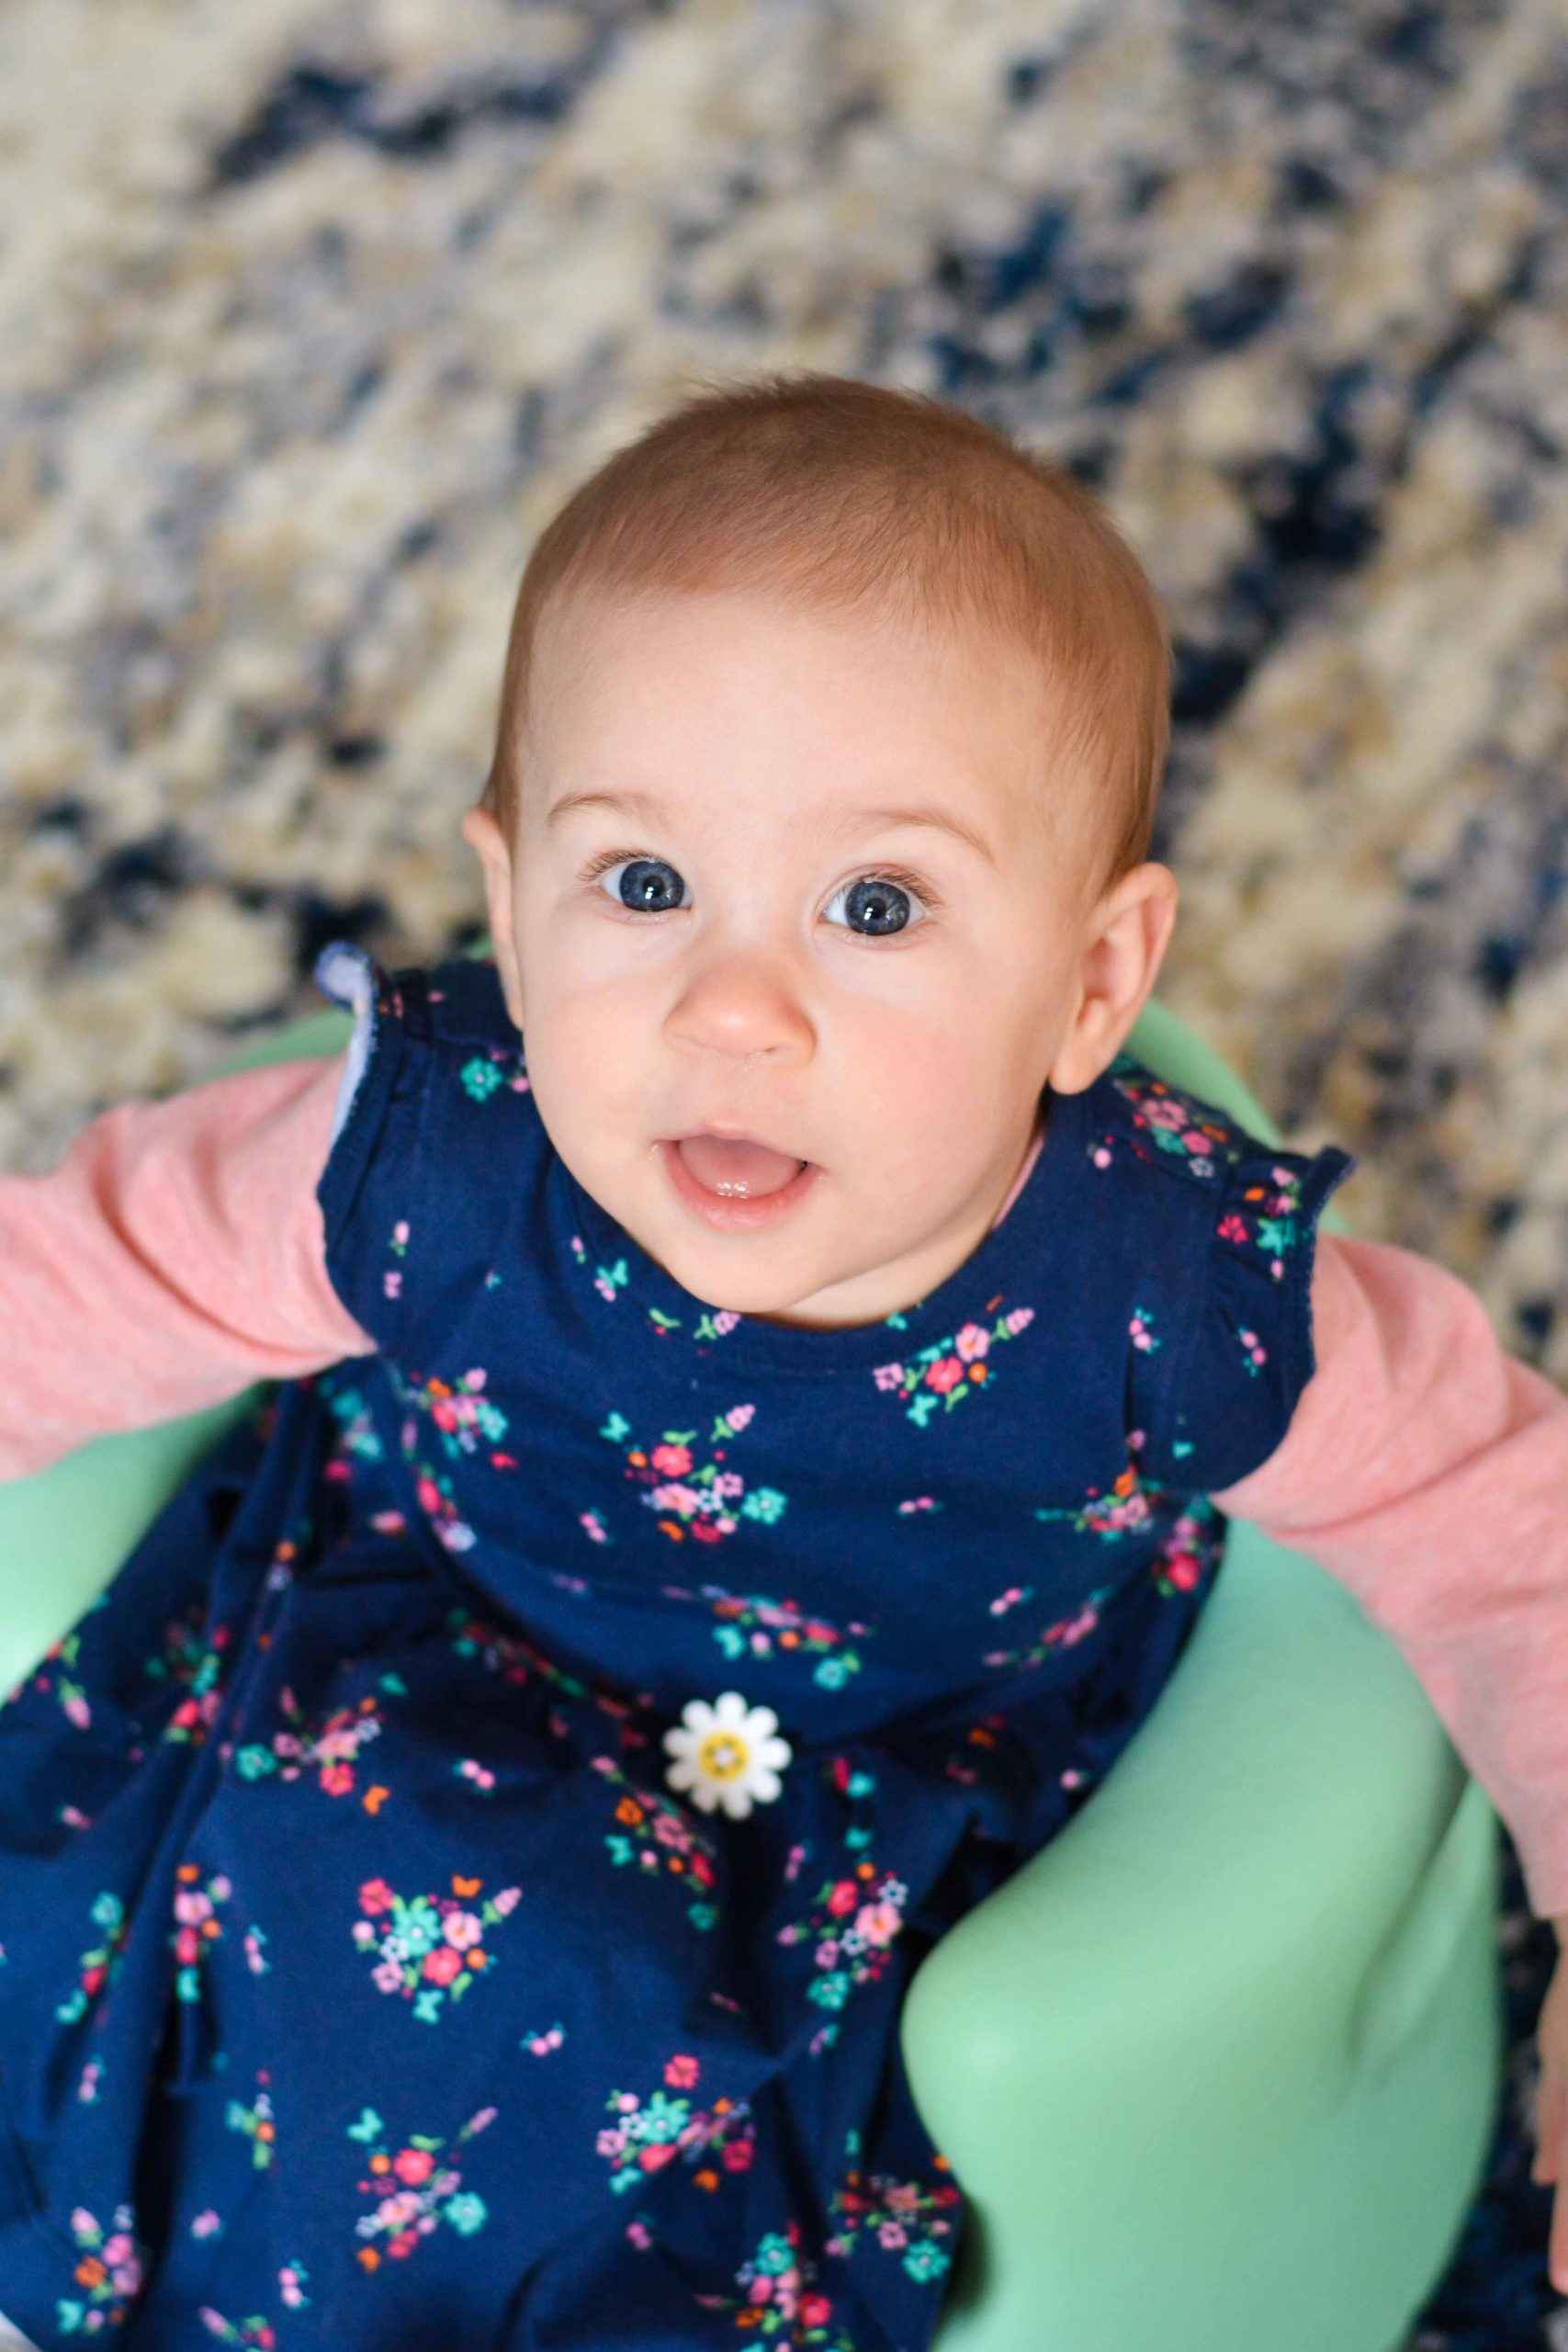 Hadassah is wearing a long sleeved salmon colored onesie covered by a navy blue floral jumper with a daisy-shaped button sewn at the center of the waist seam. She's sitting up in a mint green molded rubber Bumbo seat and is looking up at the camera with big blue eyes and a partial smile.